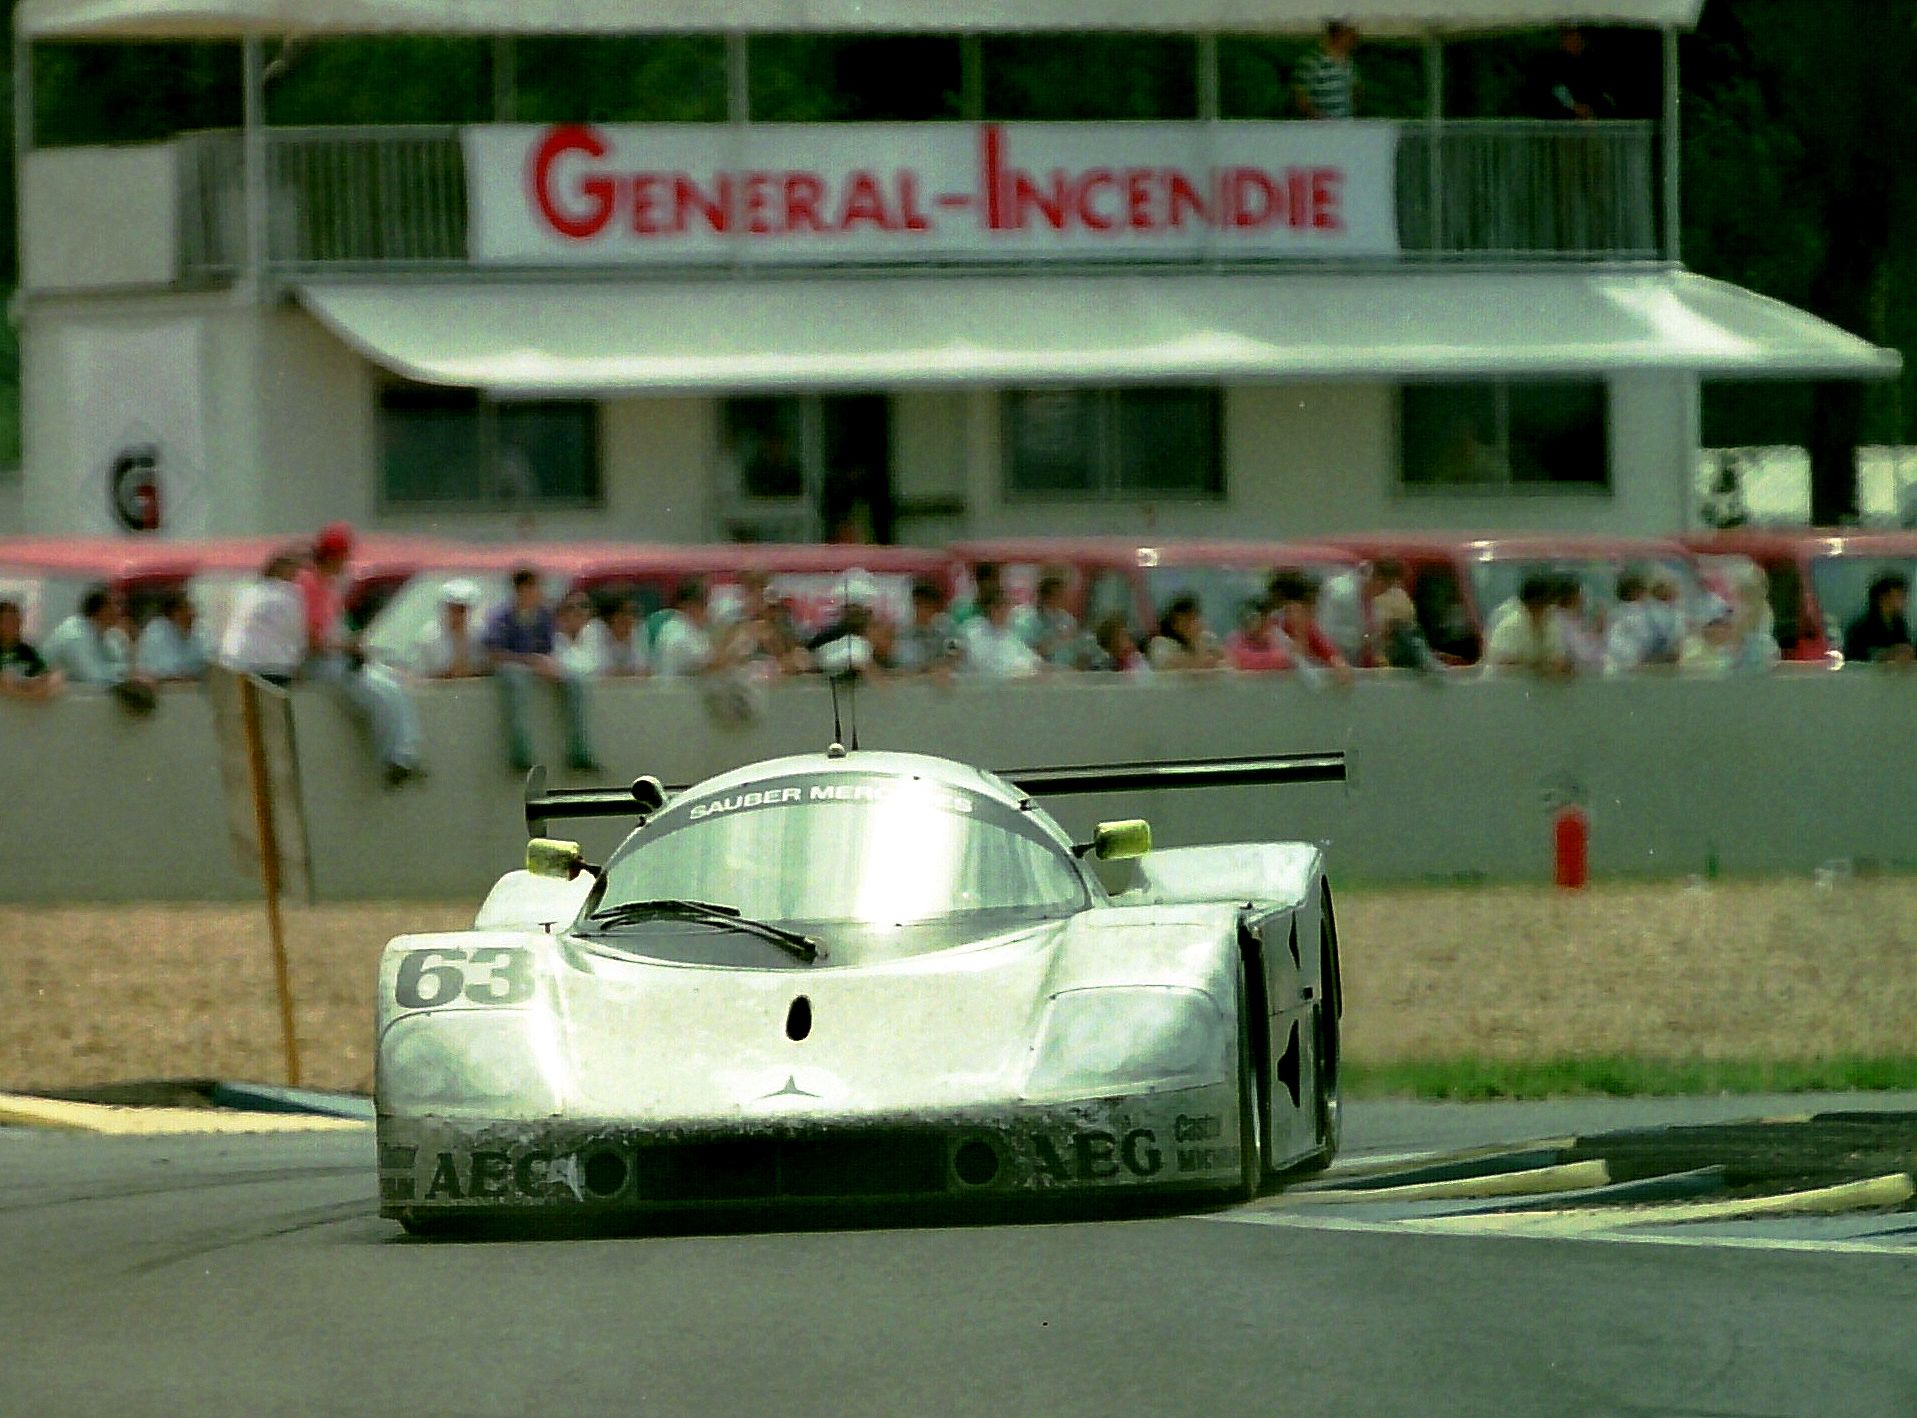 The winning Sauber C9-88 - Jochen Mass, Manuel Reuter & Stanley Dickens at Ford Chicane at the 1989 Le Mans  / Copy. Martin LEE-Flickr